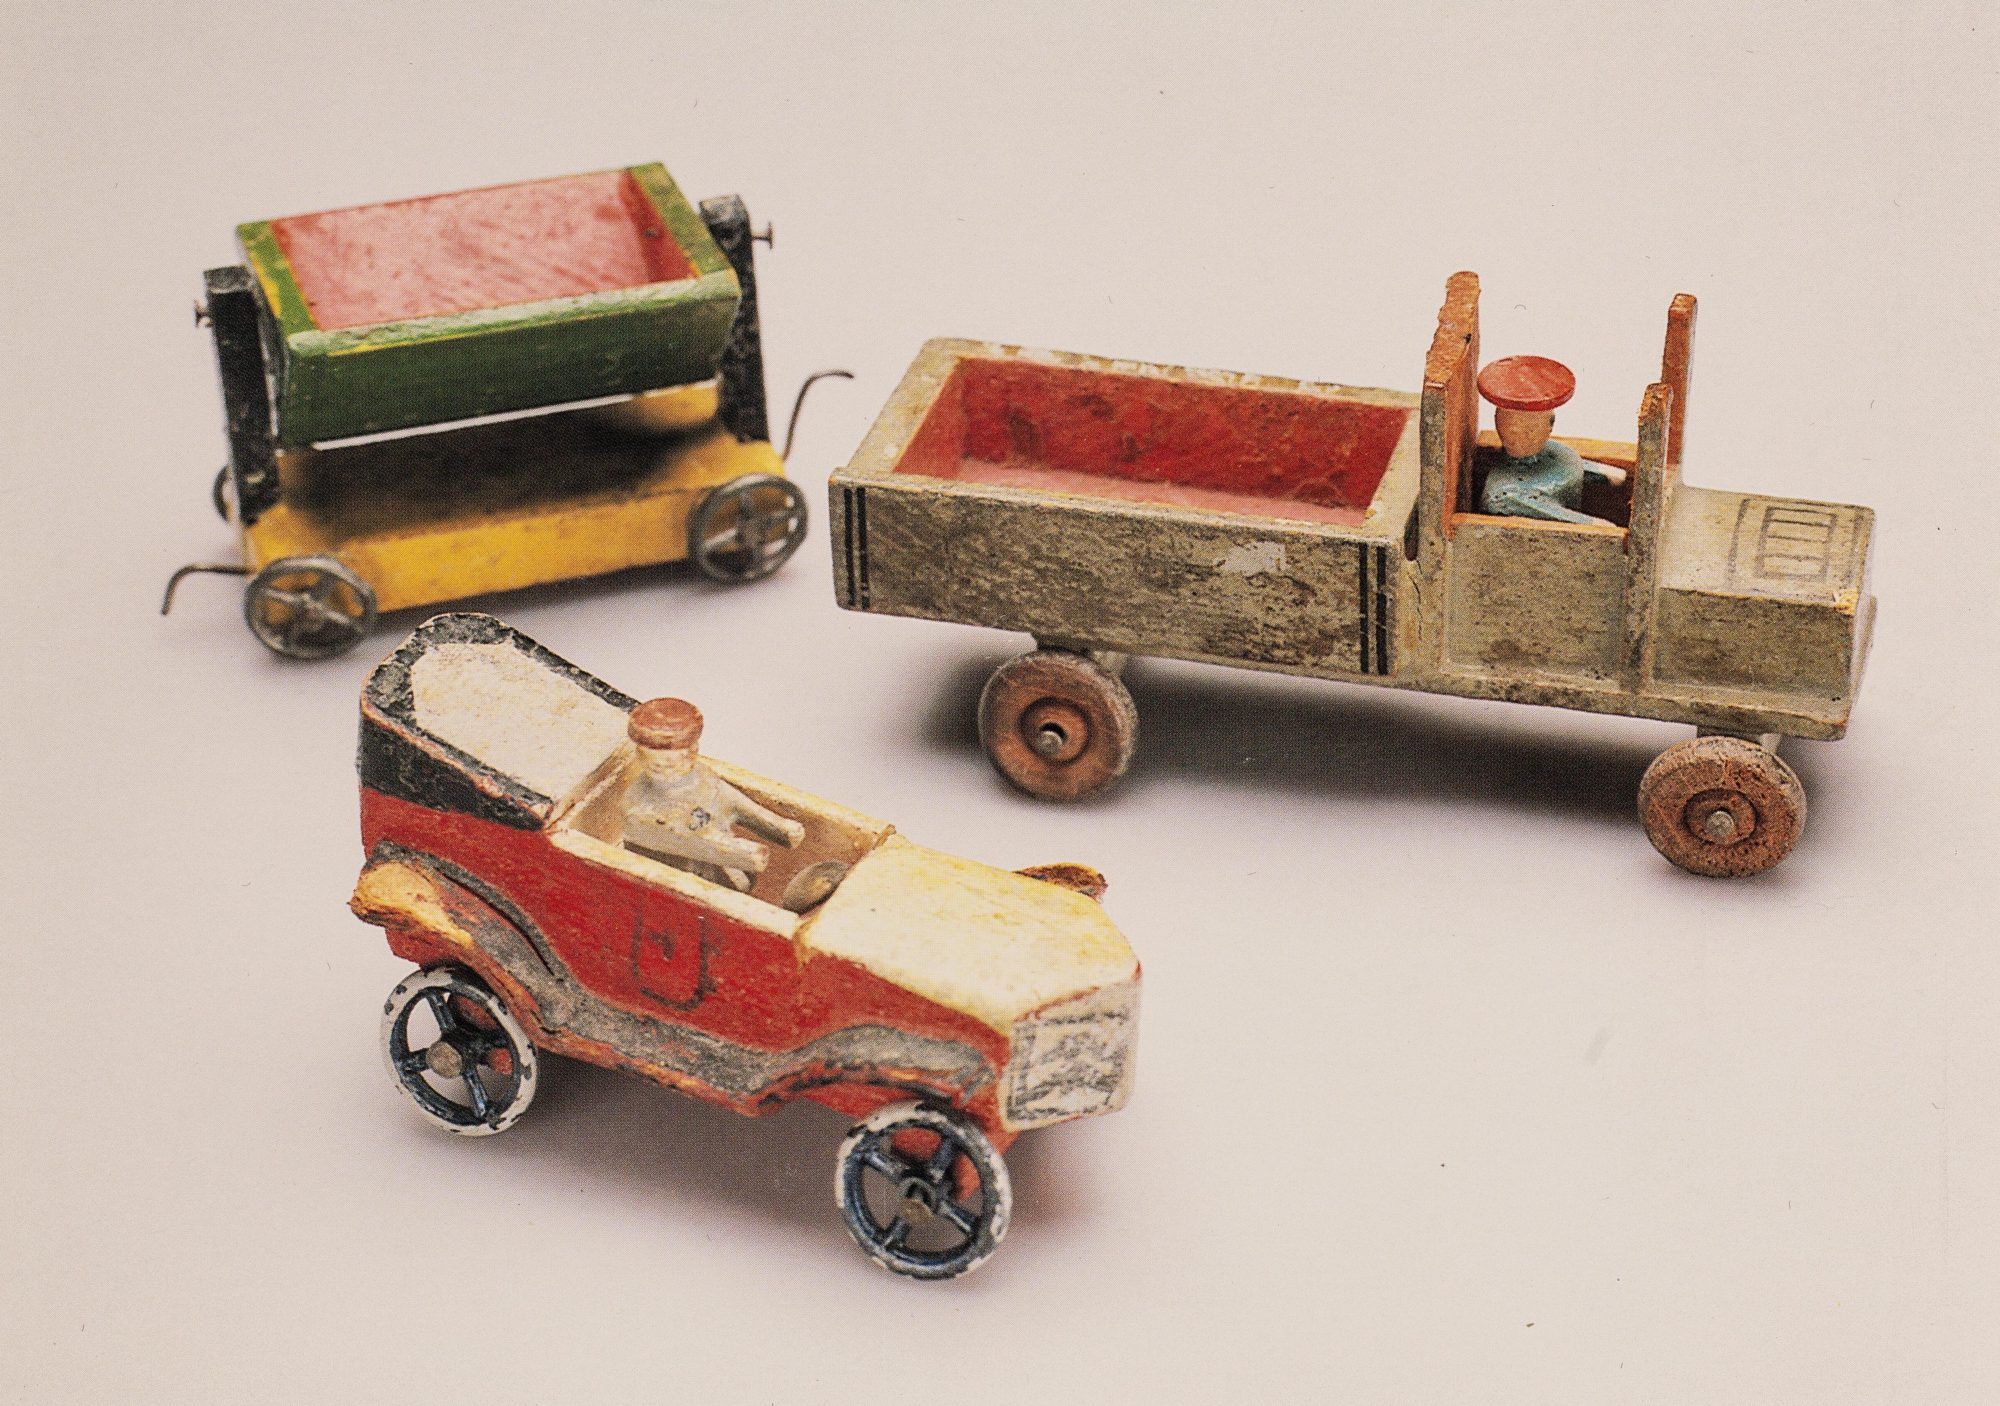 A photo of painted wooden cars from the 1920s, like those used by Klein with her child patients